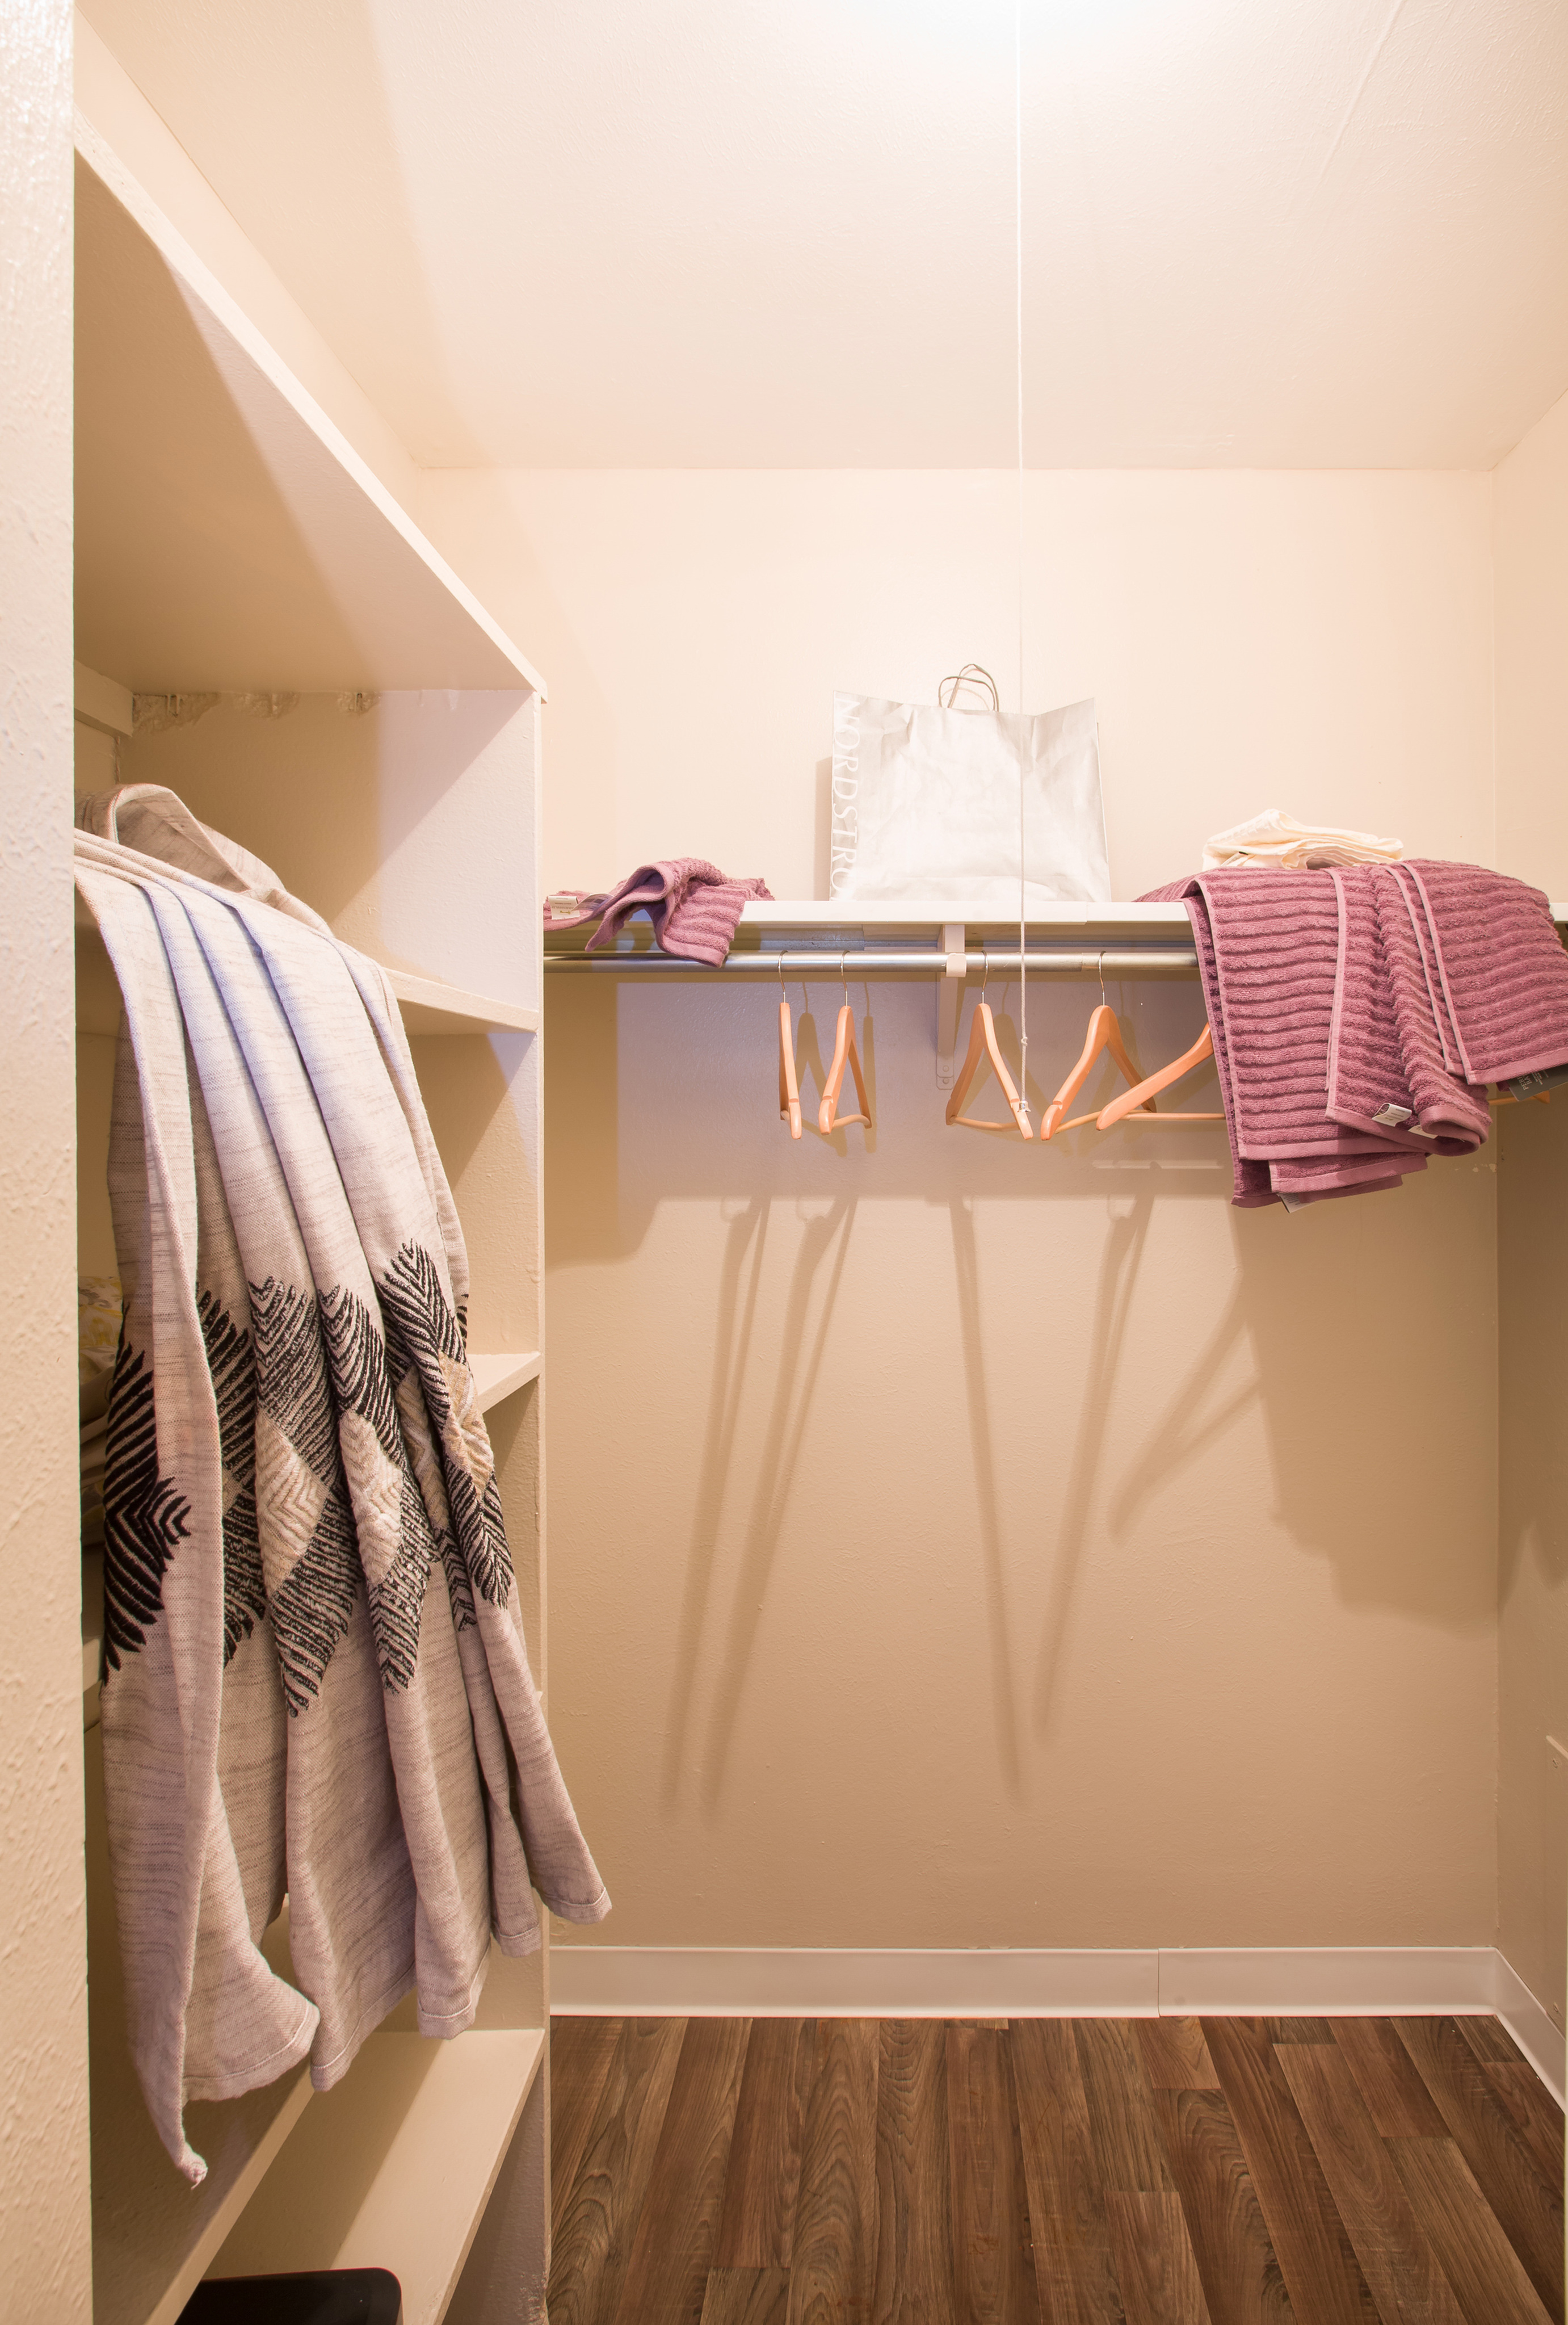 Image of Walk-In Closets for Vista Park Apartments